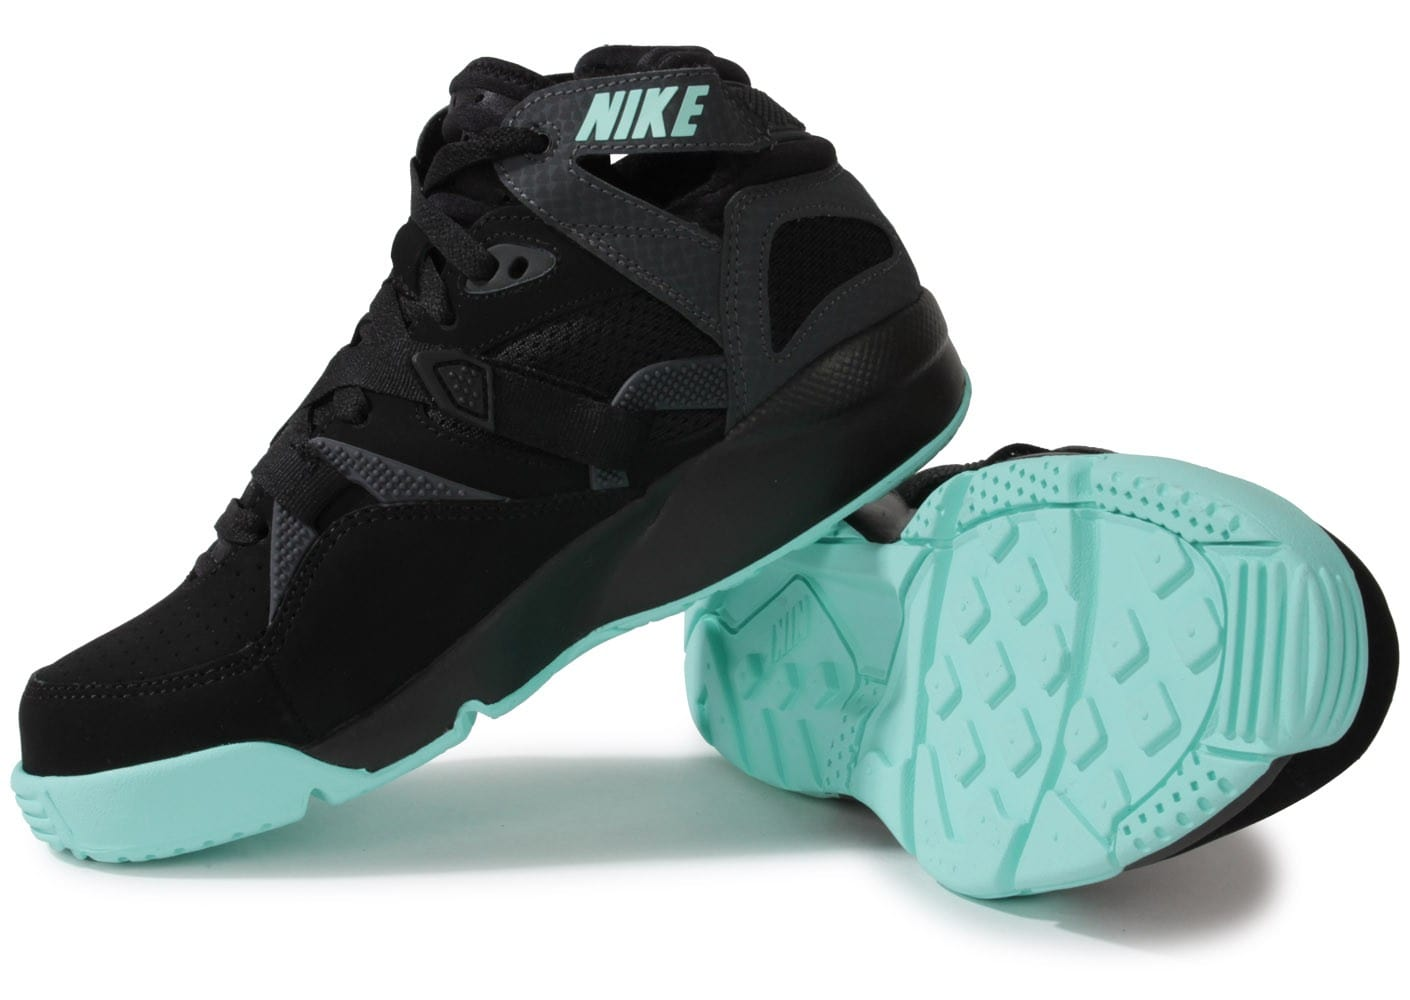 reputable site 6e70b 3d591 ... Chaussures Nike Air Trainer Max 91 Black Turquoise vue intérieure ...